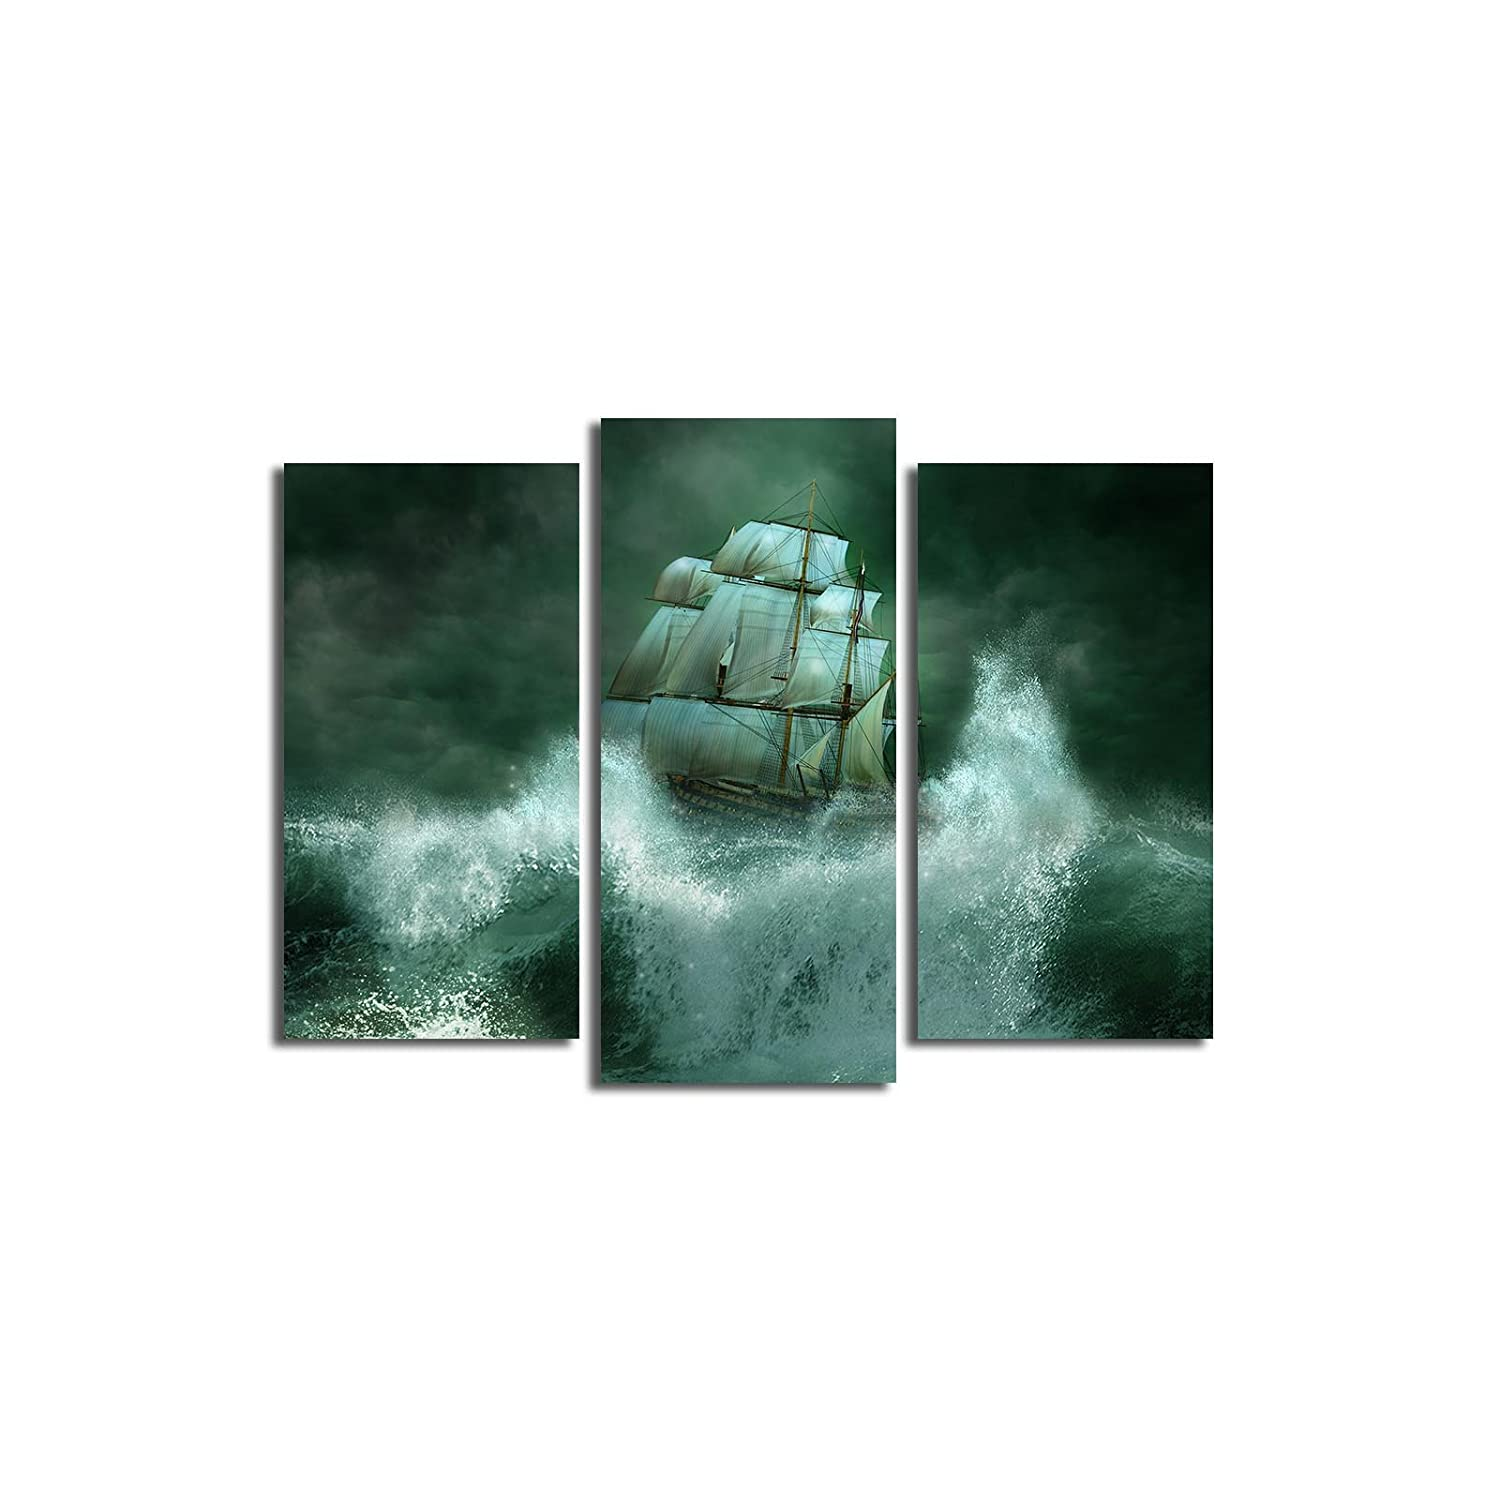 26 x 18 Total Wooden Thick Frame Painting Ship Ocean Storm Night Wave Cloud Nature 3PATK-43 Multicolor LaModaHome Decorative Canvas Wall Art 3 Pcs